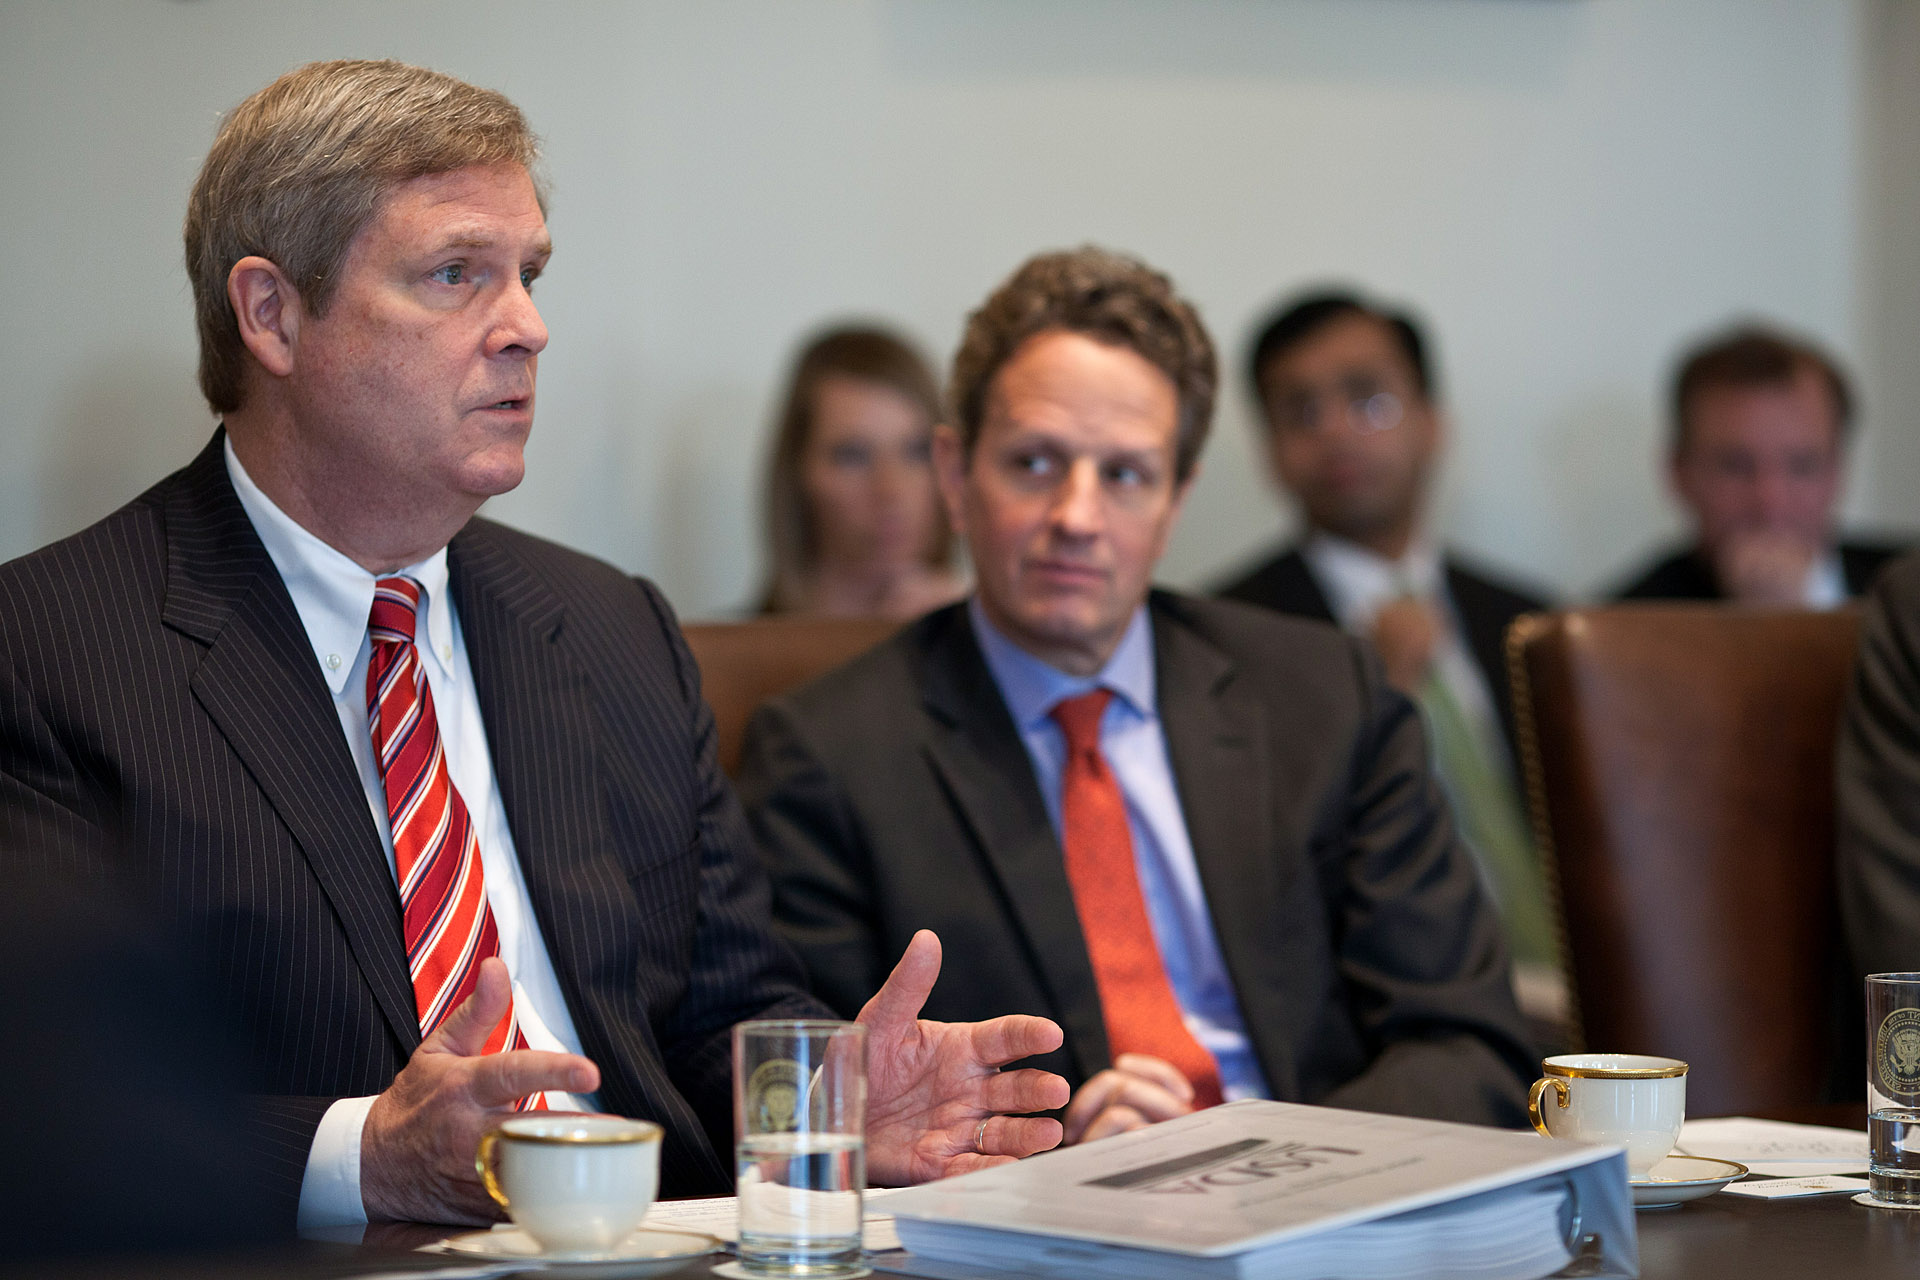 Agriculture Secretary Tom Vilsack speaks during the Cabinet meeting (January 31, 2012